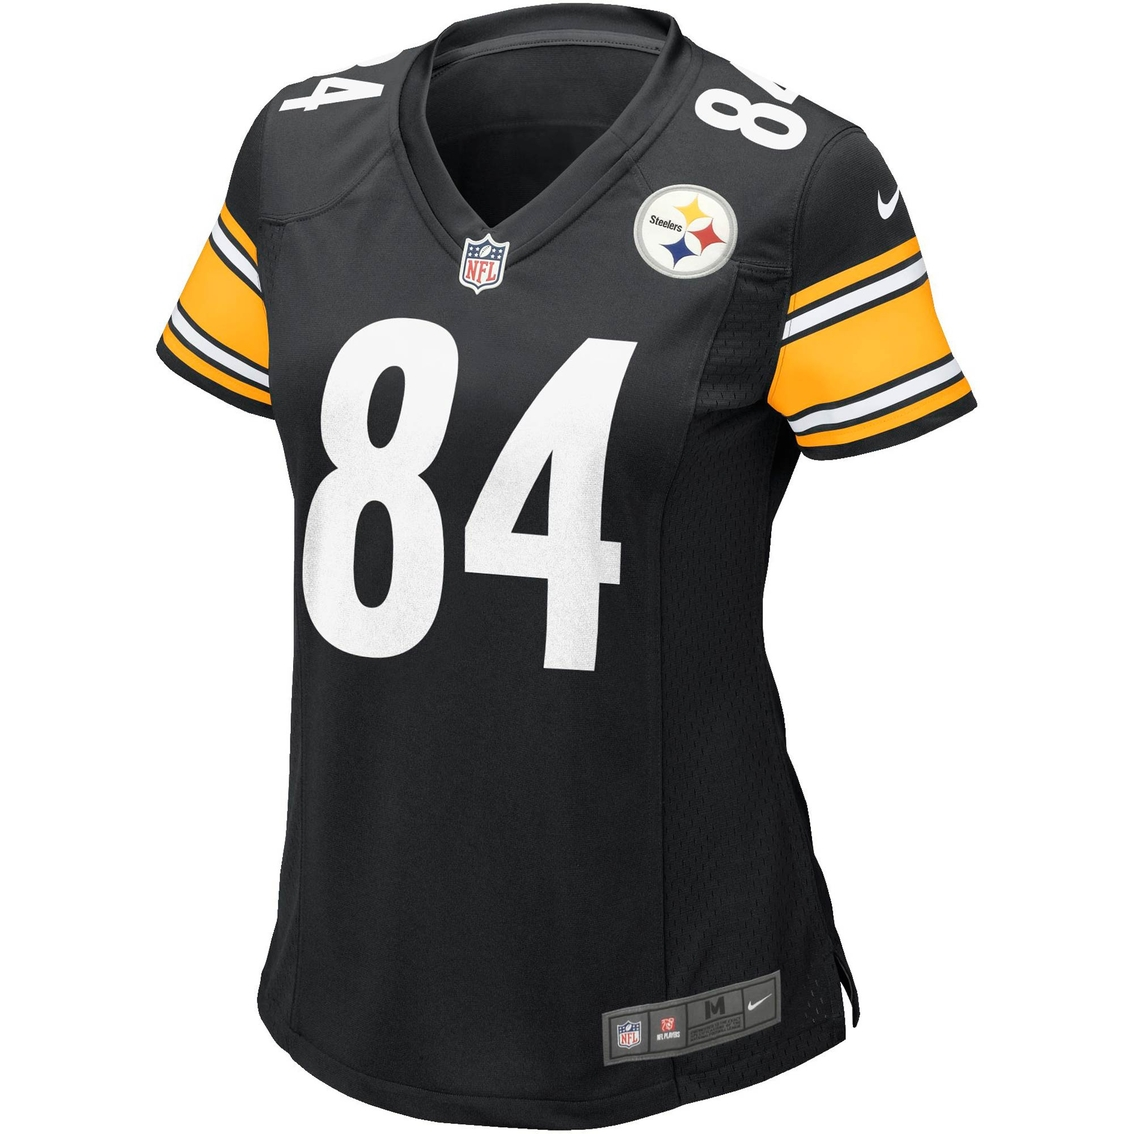 wholesale dealer f1b49 0f1c7 Nike Nfl Pittsburgh Steelers Women's Antonio Brown Jersey ...